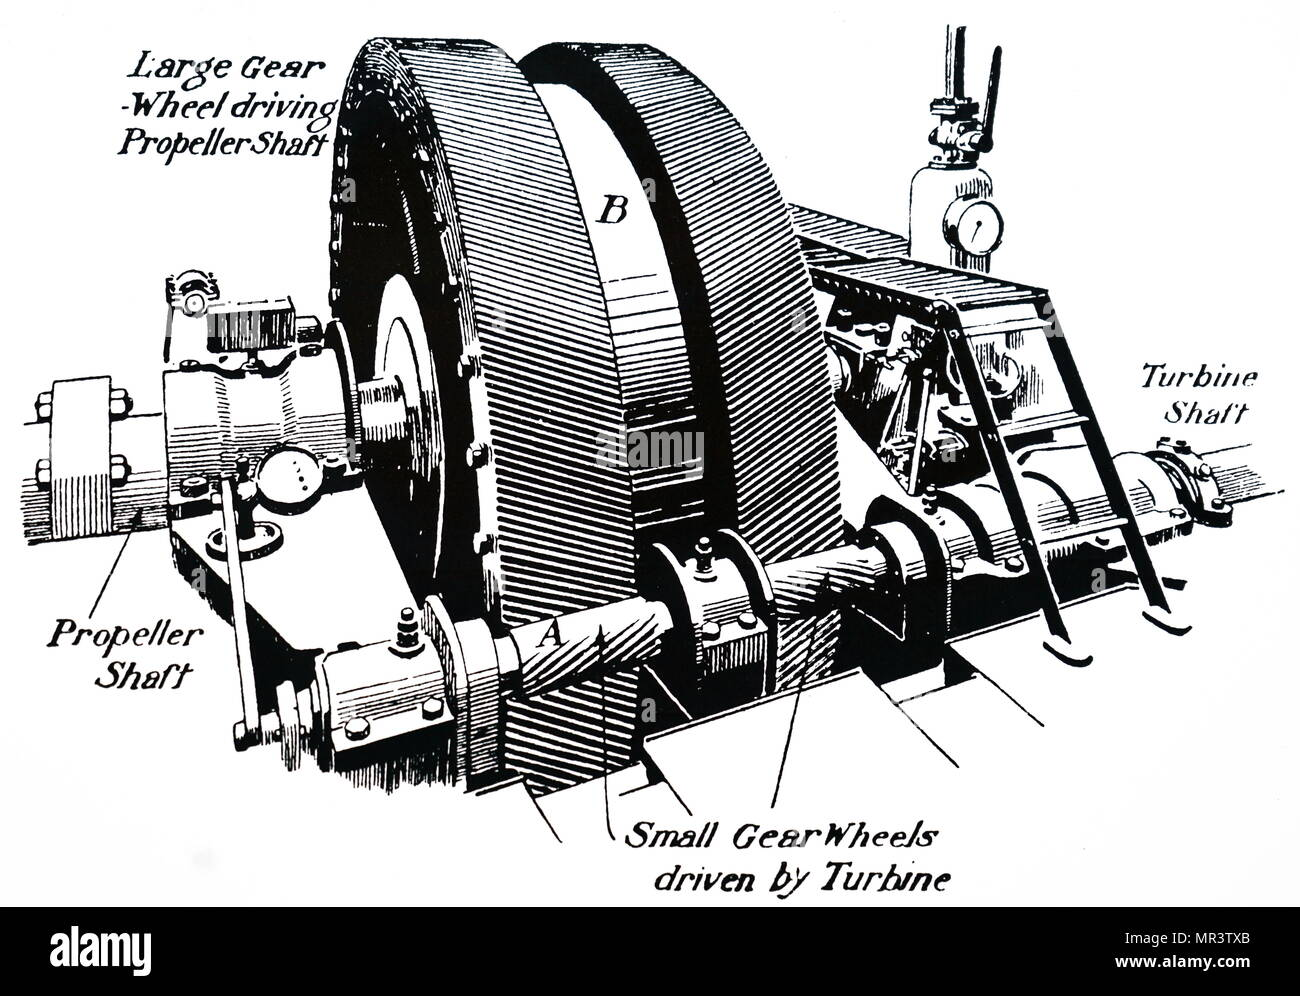 Illustration depicting Parson's gearing down machinery for steam turbines, which allowed the turbine to be run much faster than the propeller. Dated 20th century - Stock Image